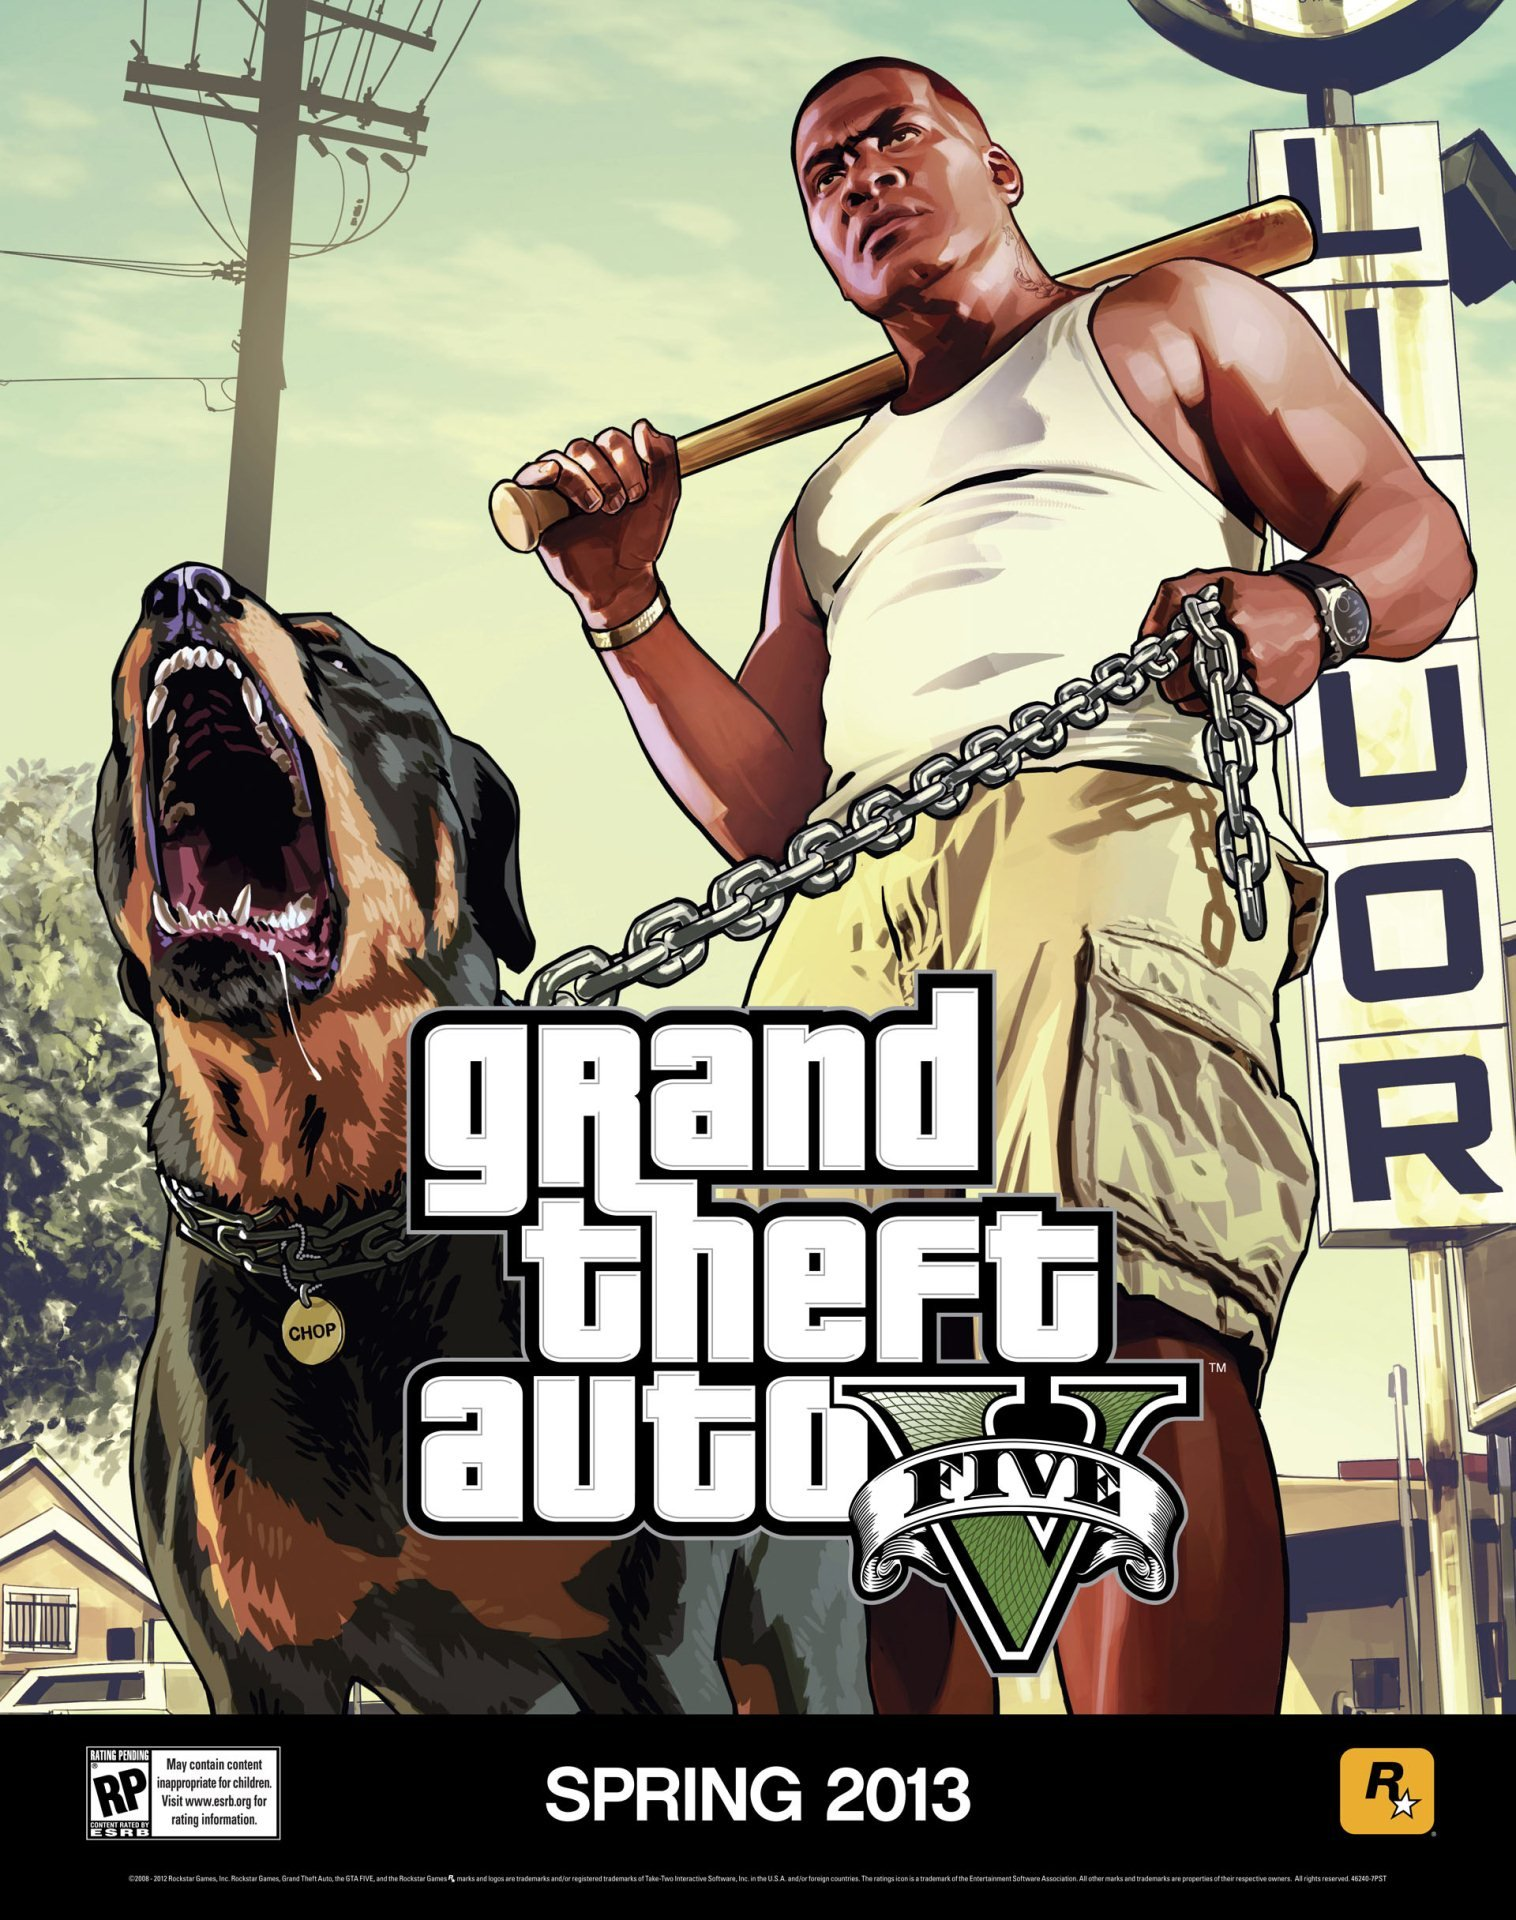 A couple of new posters for GTA 5